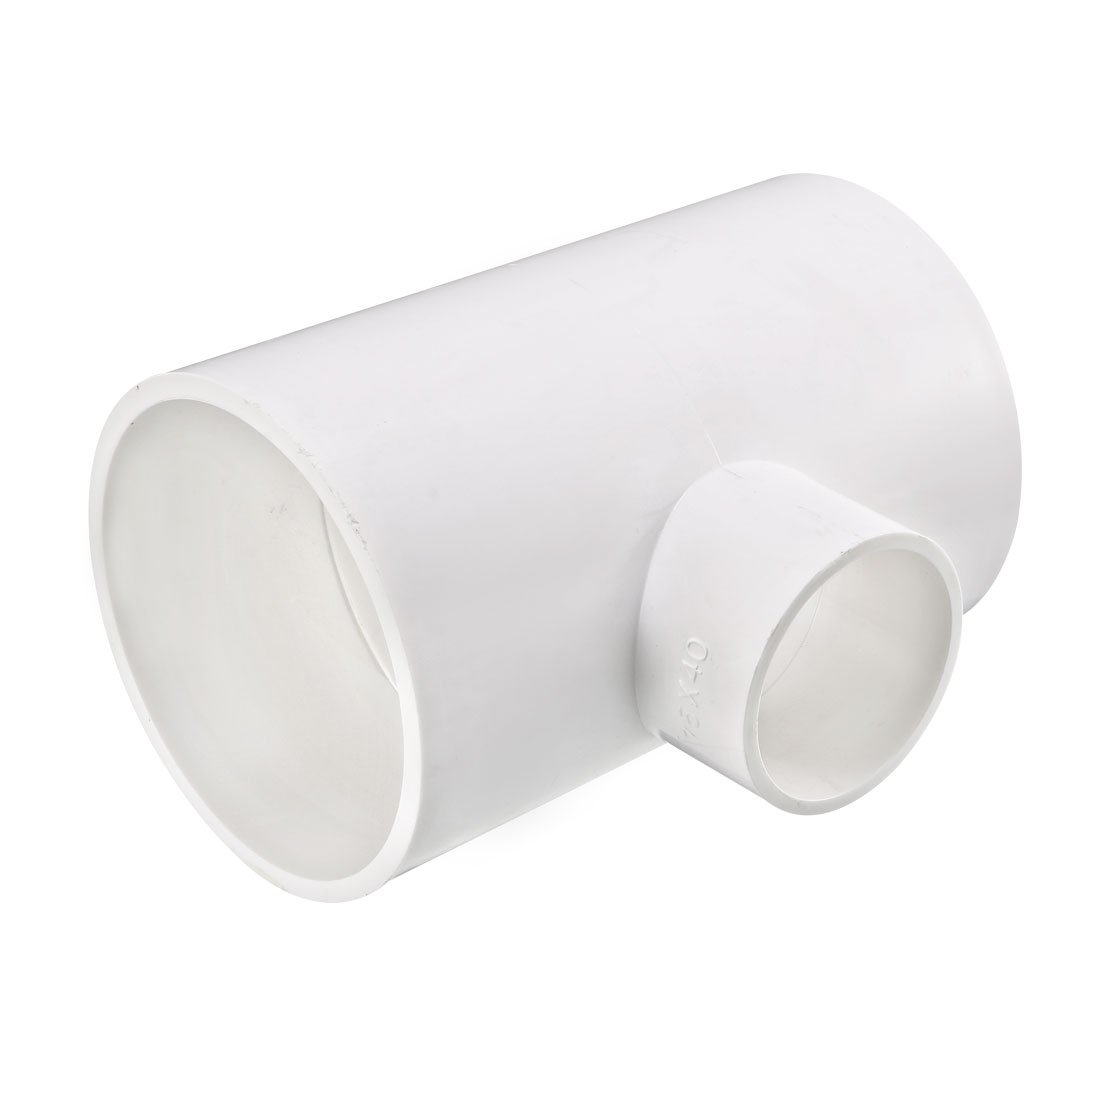 75mm x 75mmx 40mm Slip Reducing Tee PVC Pipe Fitting T-Shaped Connector